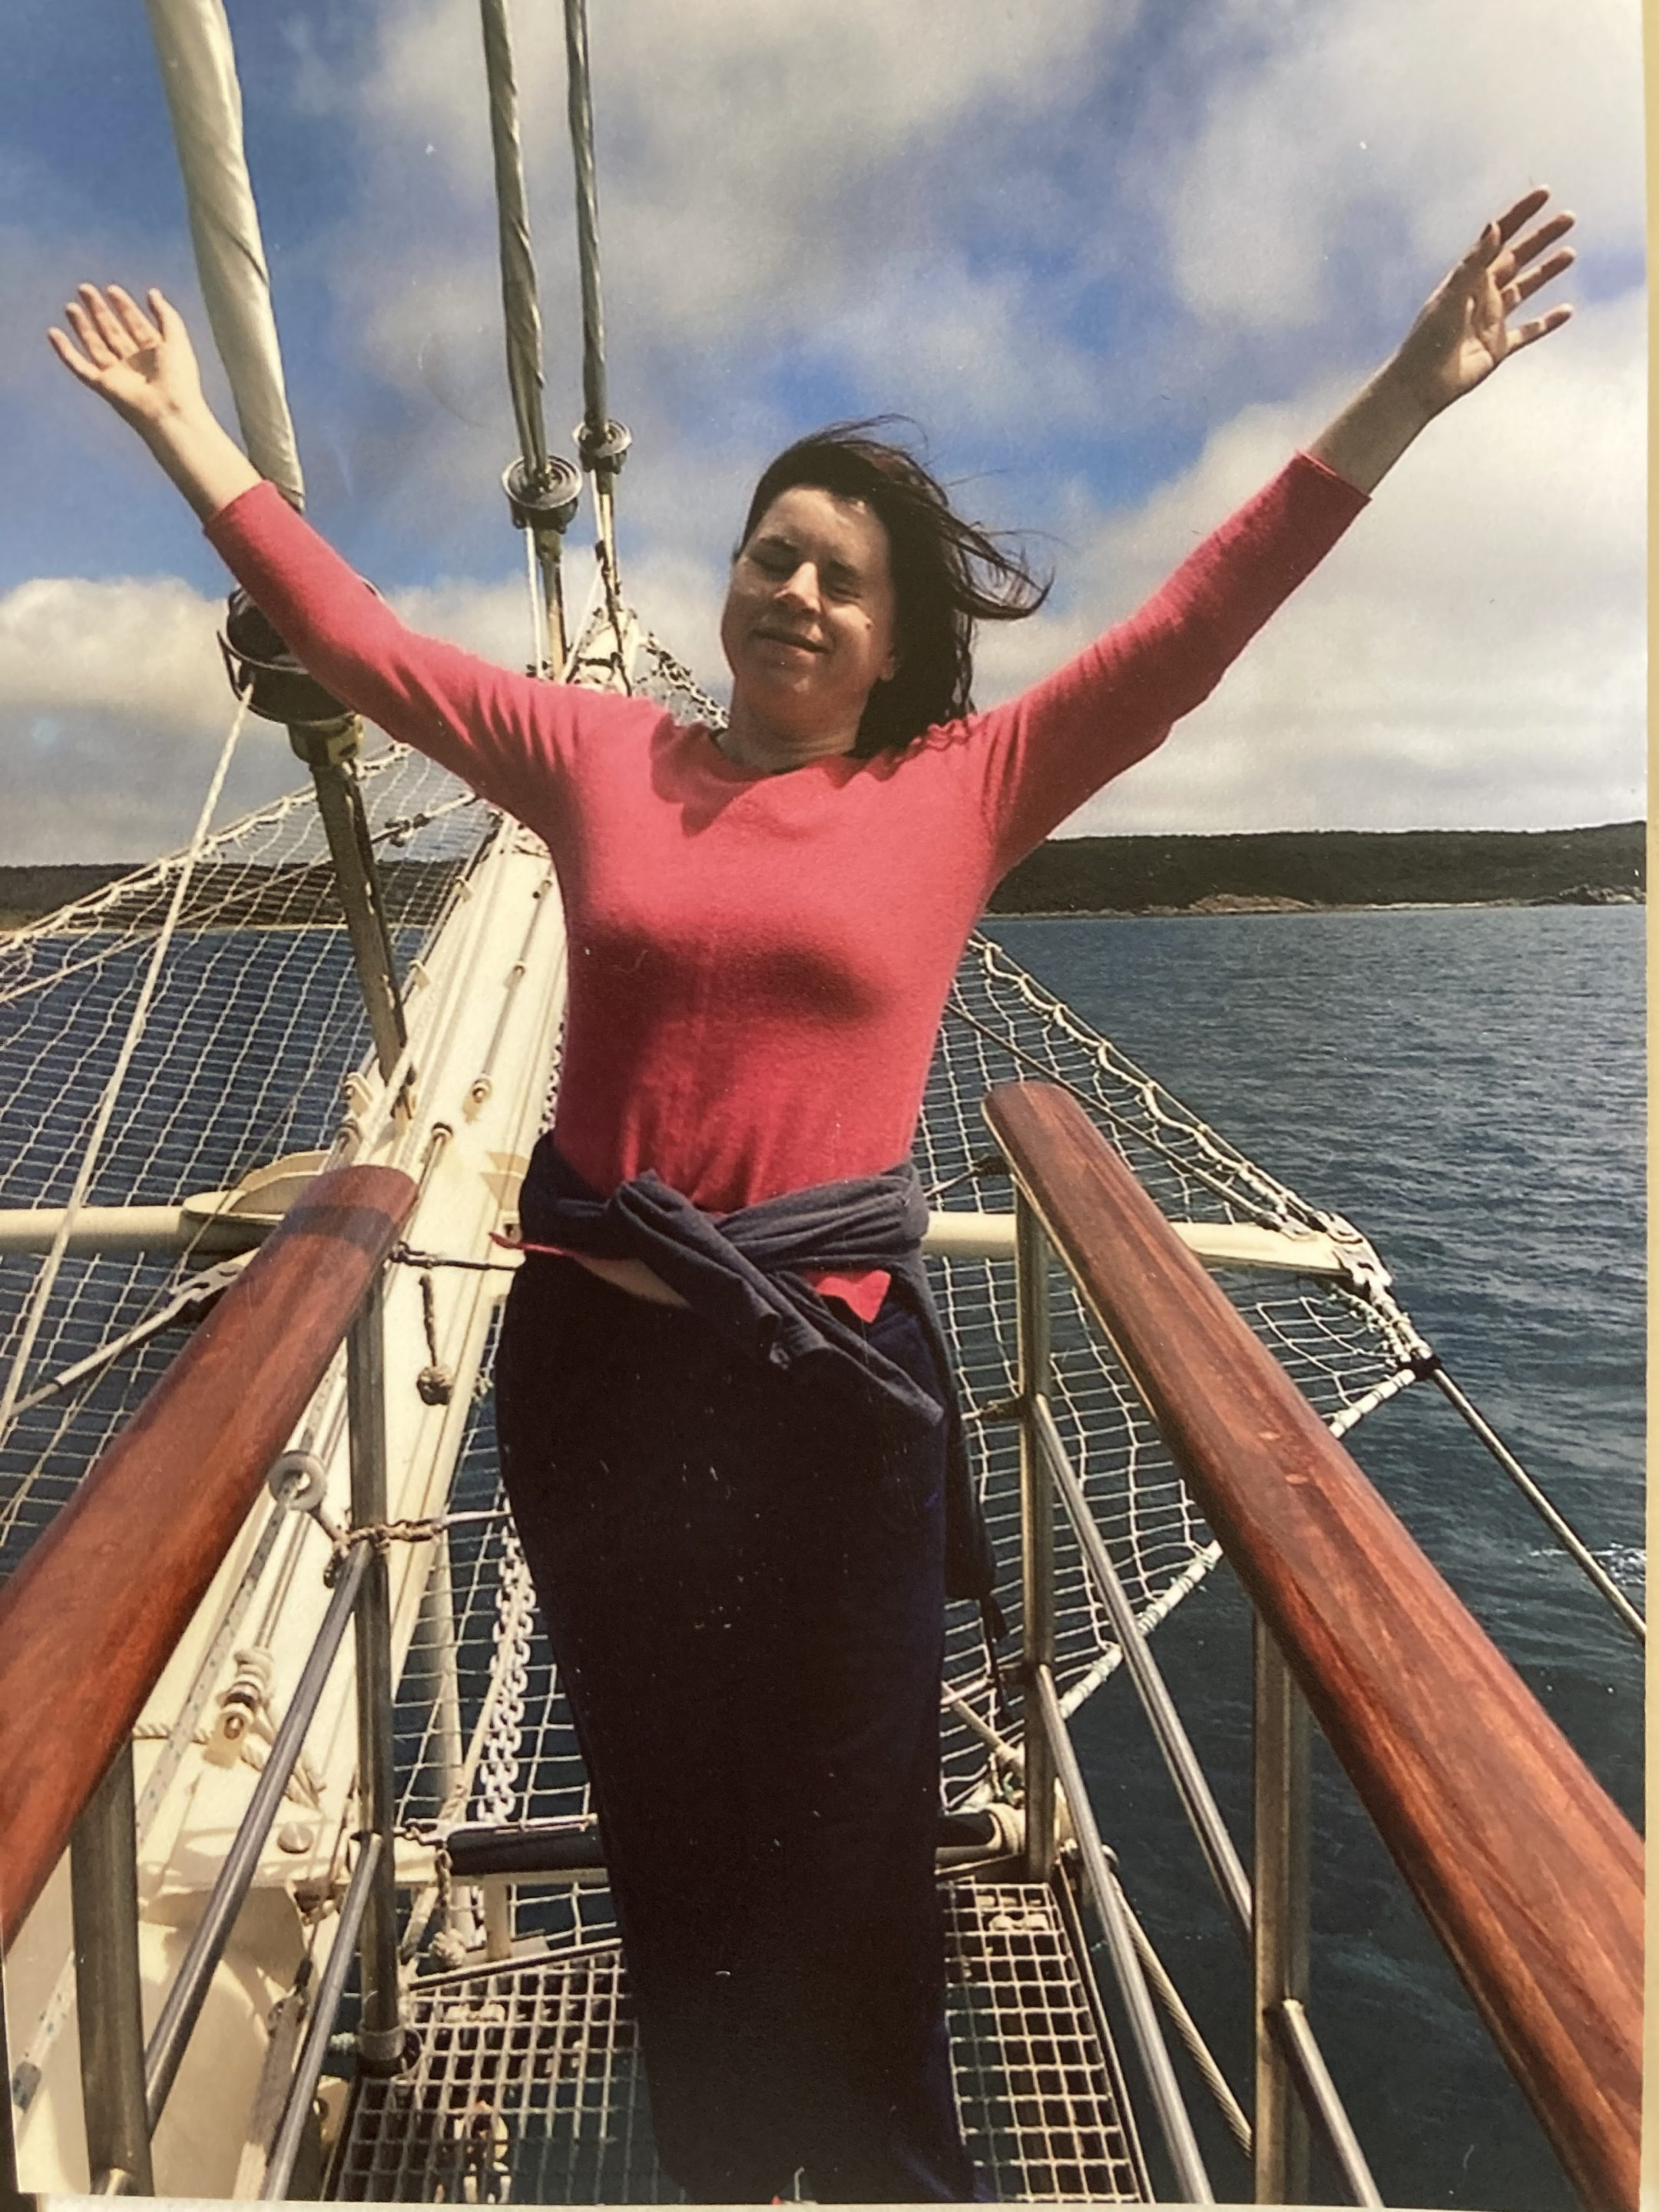 Ffion on a boat in the ocean, smiling and standing with her arms stretched outwards towards the sky.